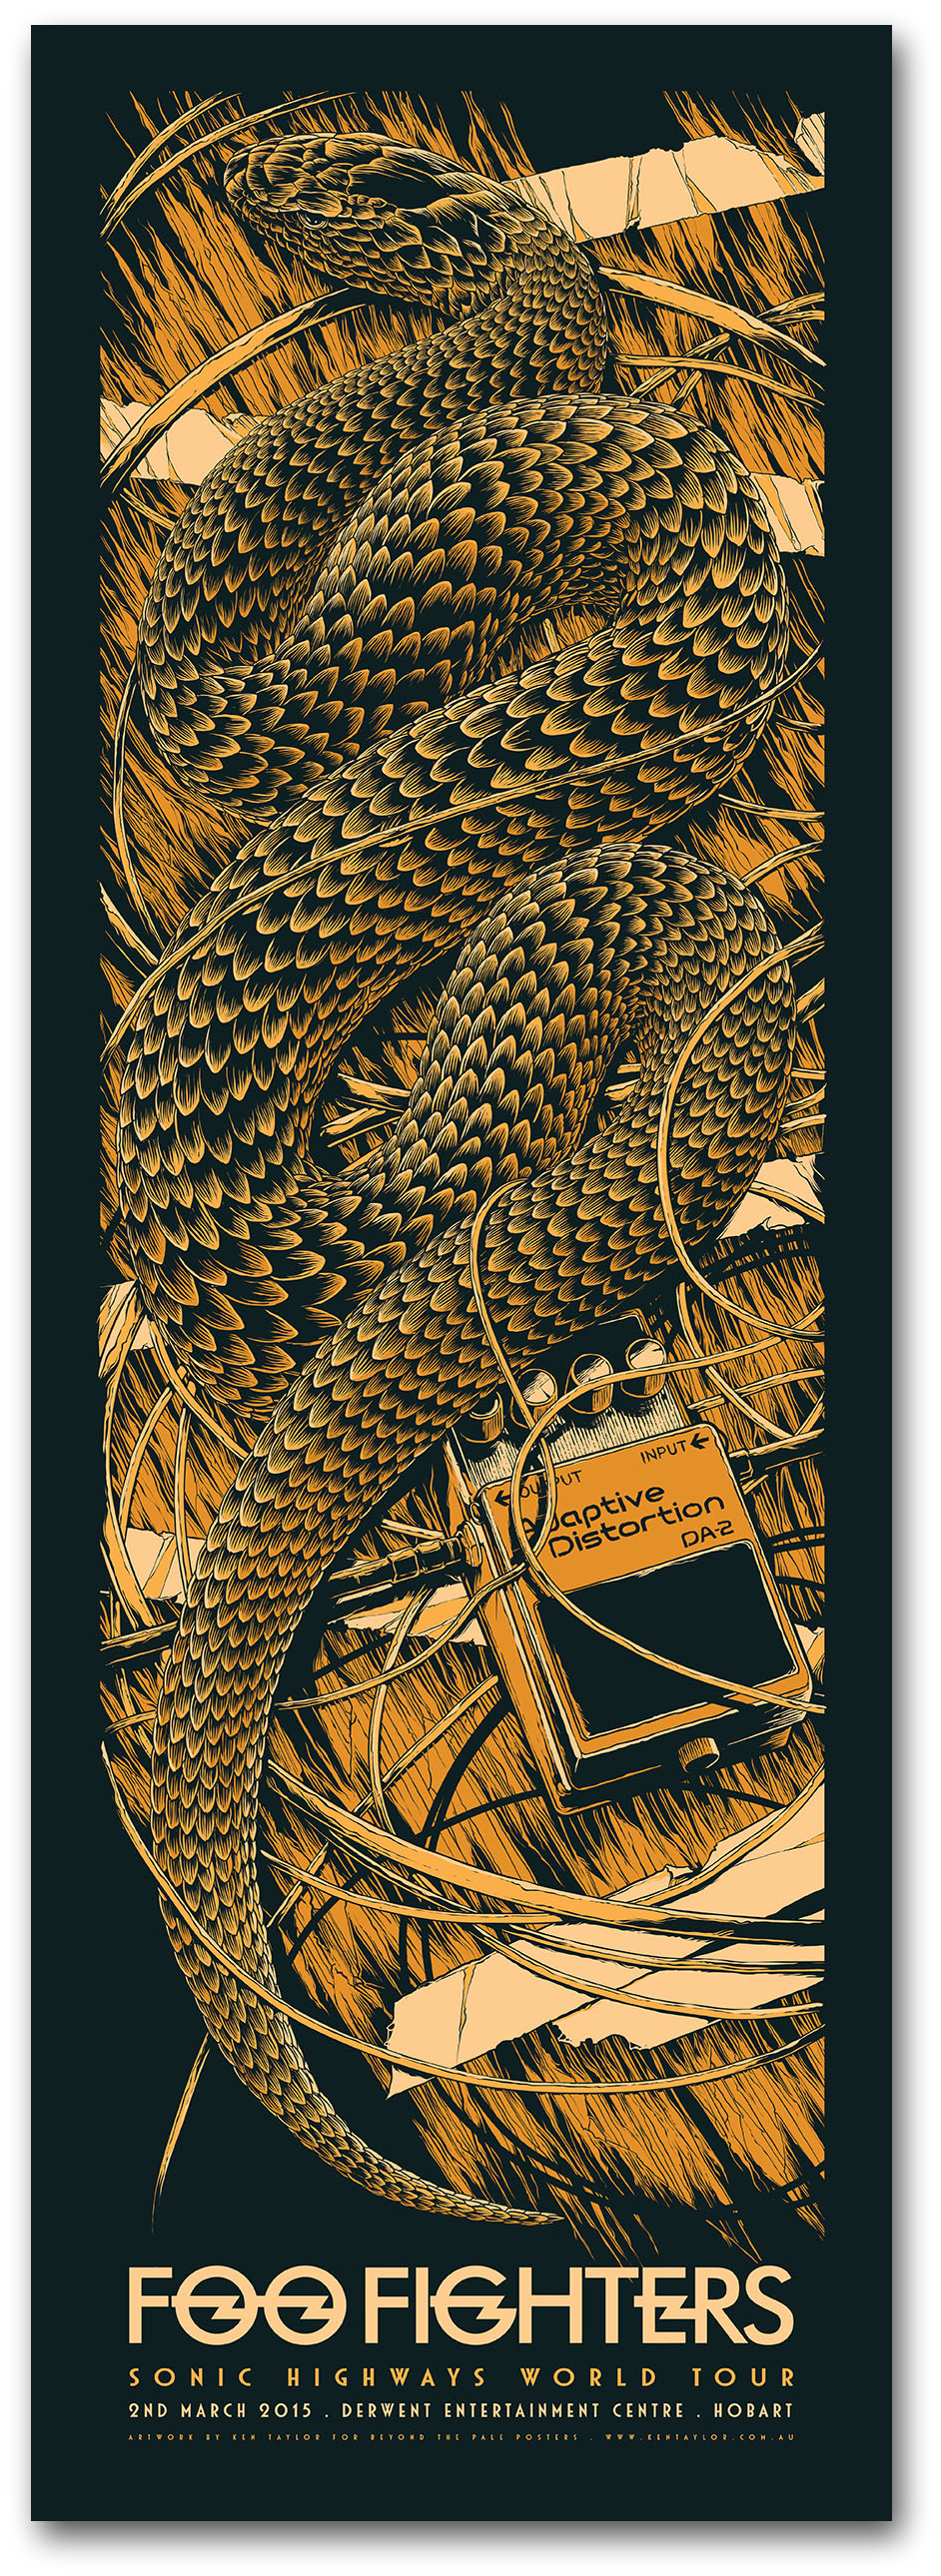 """Foo Fighters - OZ Tour 2015"" by Ken Taylor.  890 x 305mm Screenprint.  Ed of 350 S/N.  $45 (Hobart)"